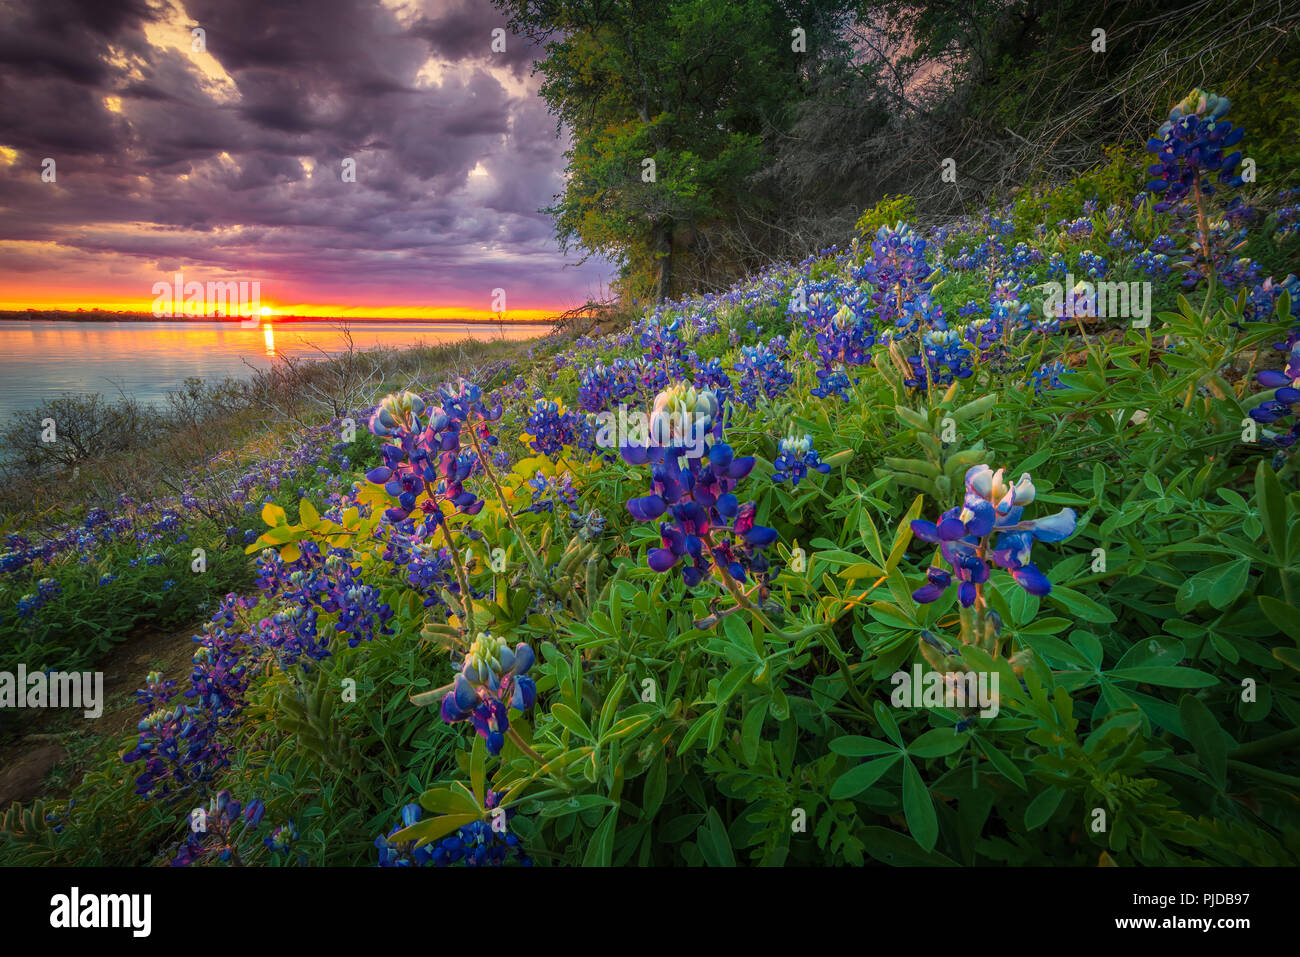 Bluebonnets at Grapevine Lake in North Texas. Lupinus texensis, the Texas bluebonnet, is a species of lupine endemic to Texas. - Stock Image